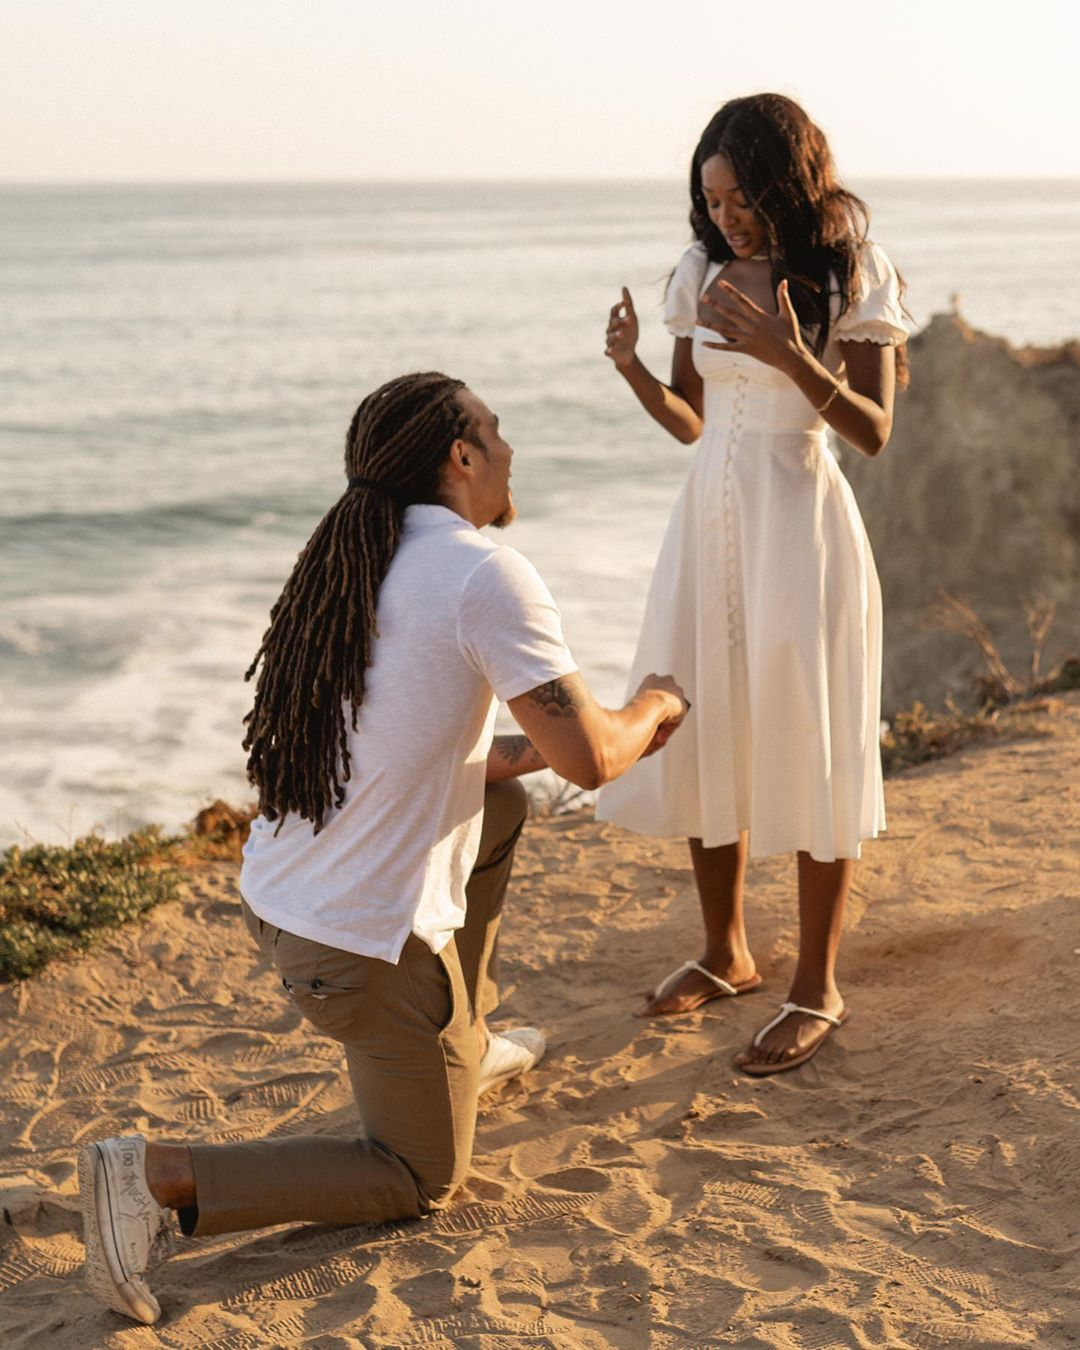 My Afro Caribbean Wedding Are You the One? Stars Clinton Moxam JM and NG Uche Nwosu Engaged Uche Clinton